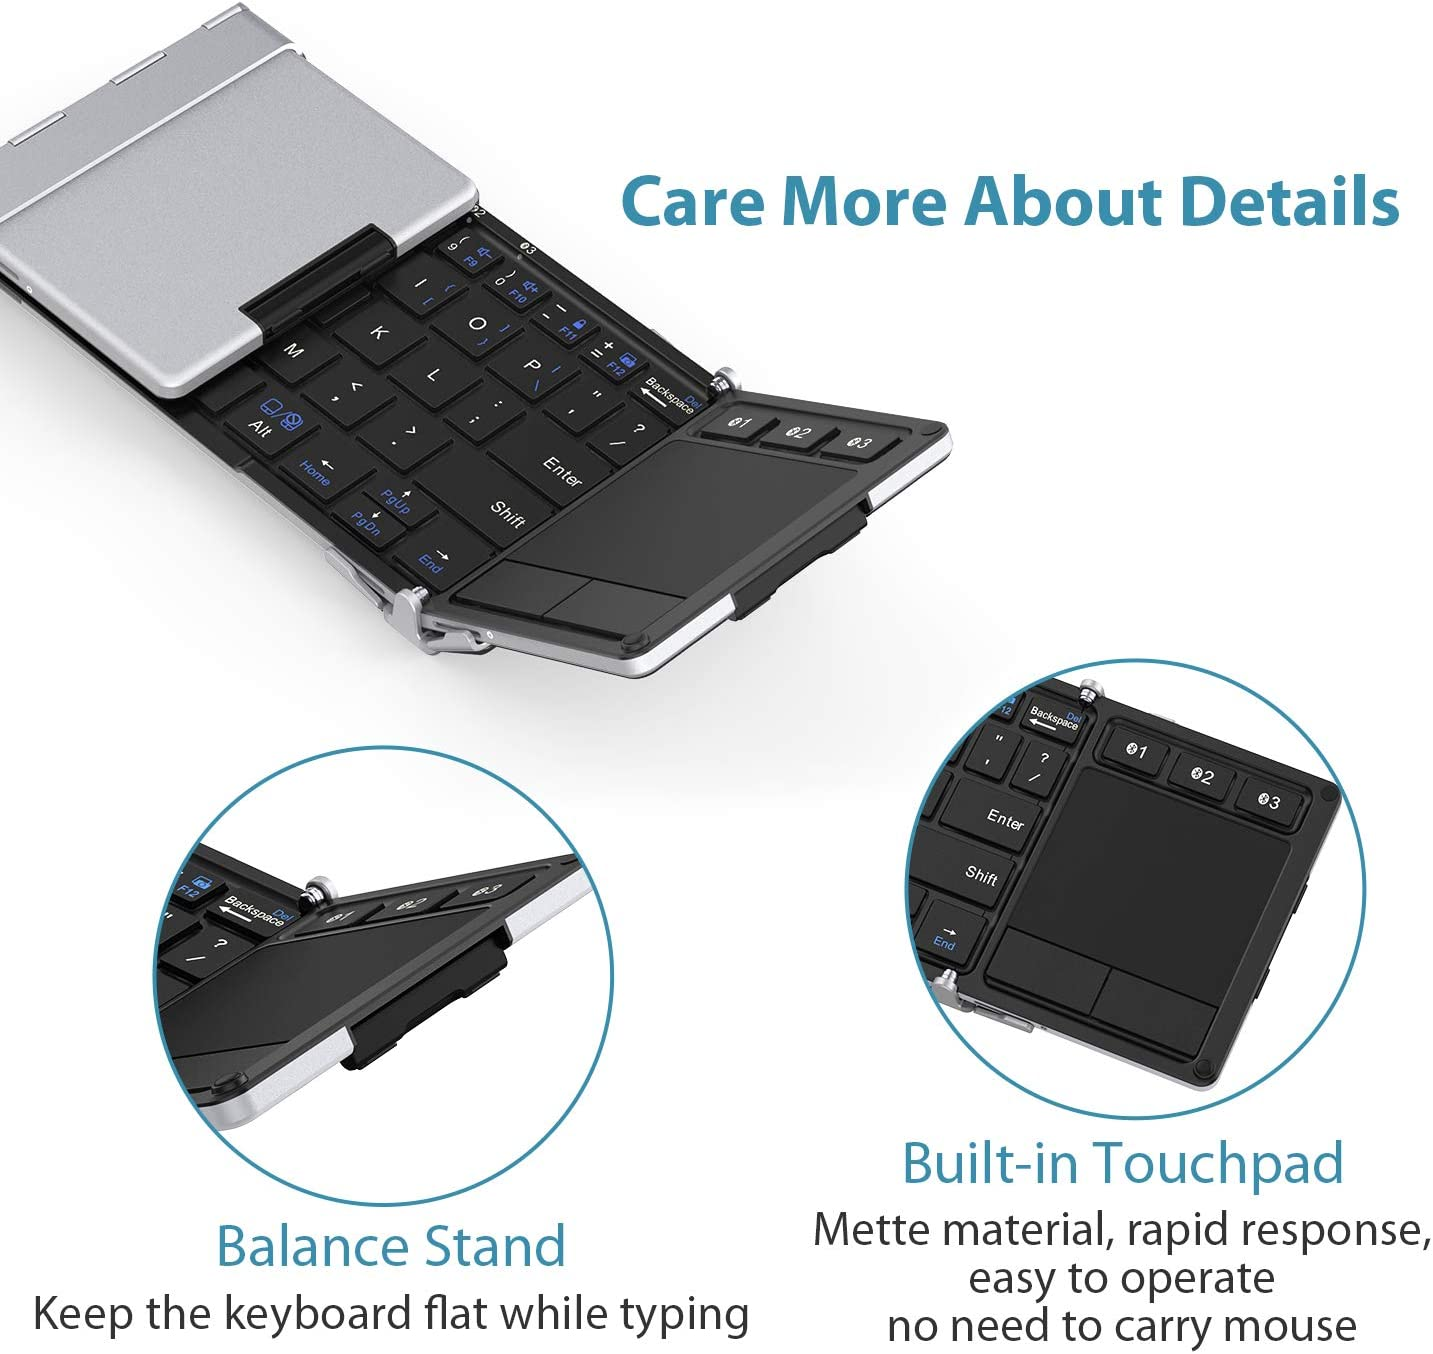 Silver iClever BK08 Bluetooth Keyboard with Sensitive Touchpad Pocket-Sized Tri-Folded Fodable Keyboard for iPad Mac iPhone Android Windows iOS Folding Keyboard Sync Up to 3 Devices